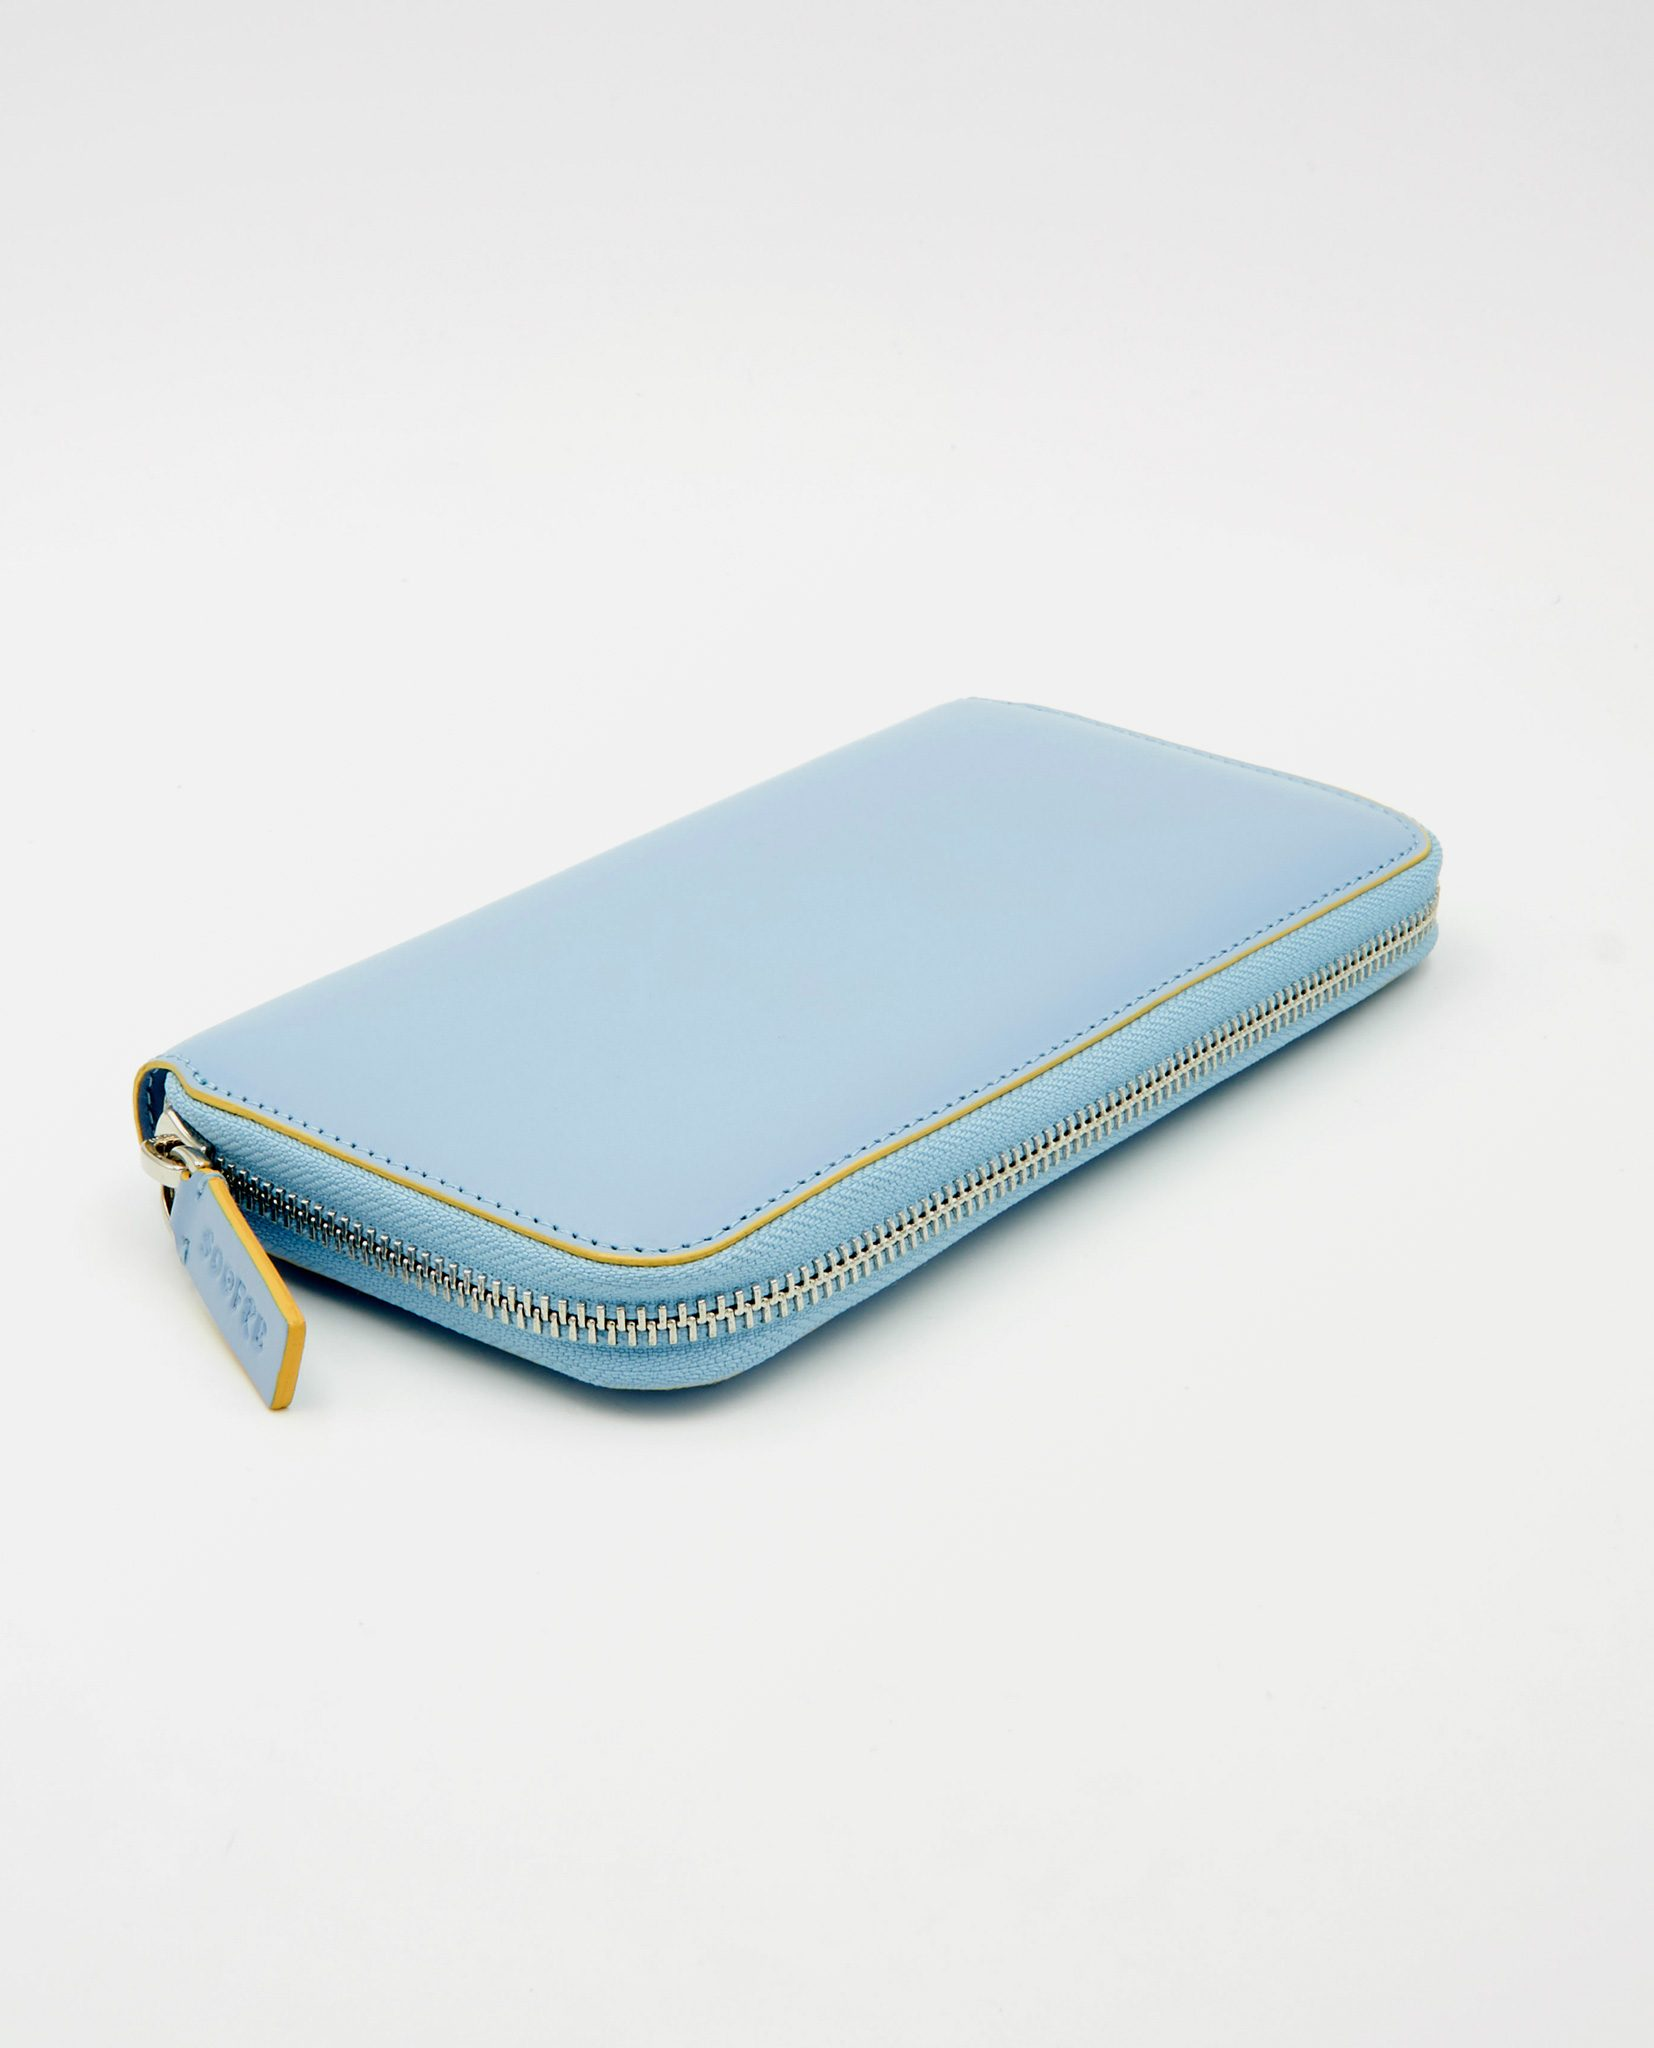 Soofre Women's Zip Wallet Smooth Leather Pale-Blue-Light-Yellow